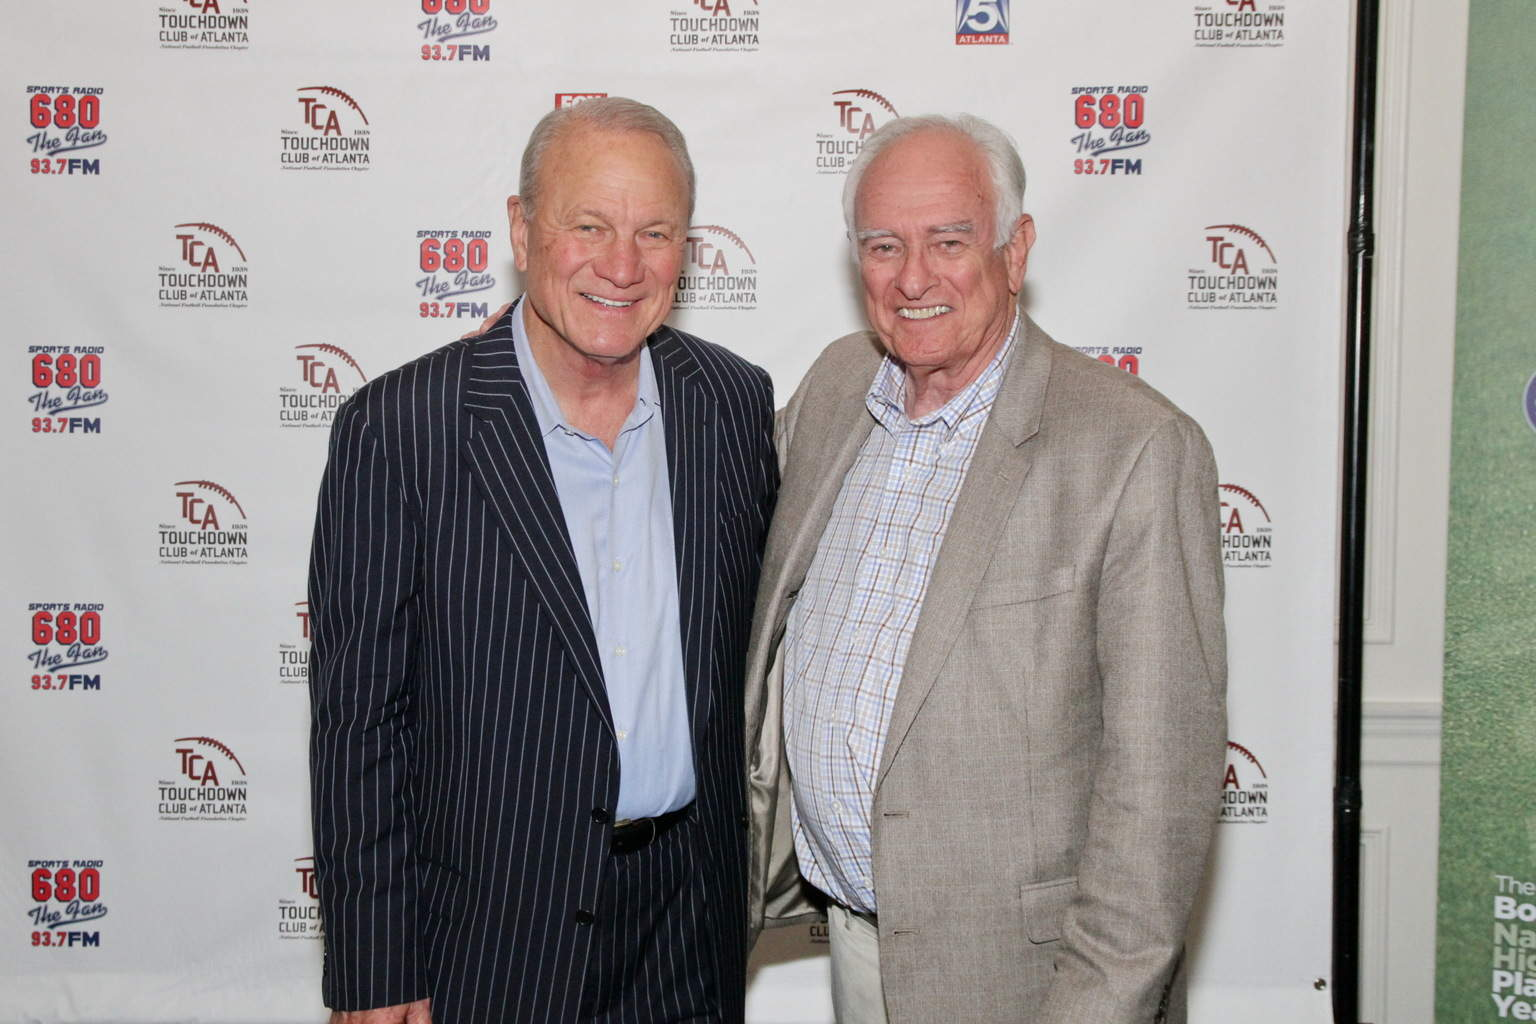 Barry Switzer & Loran Smith